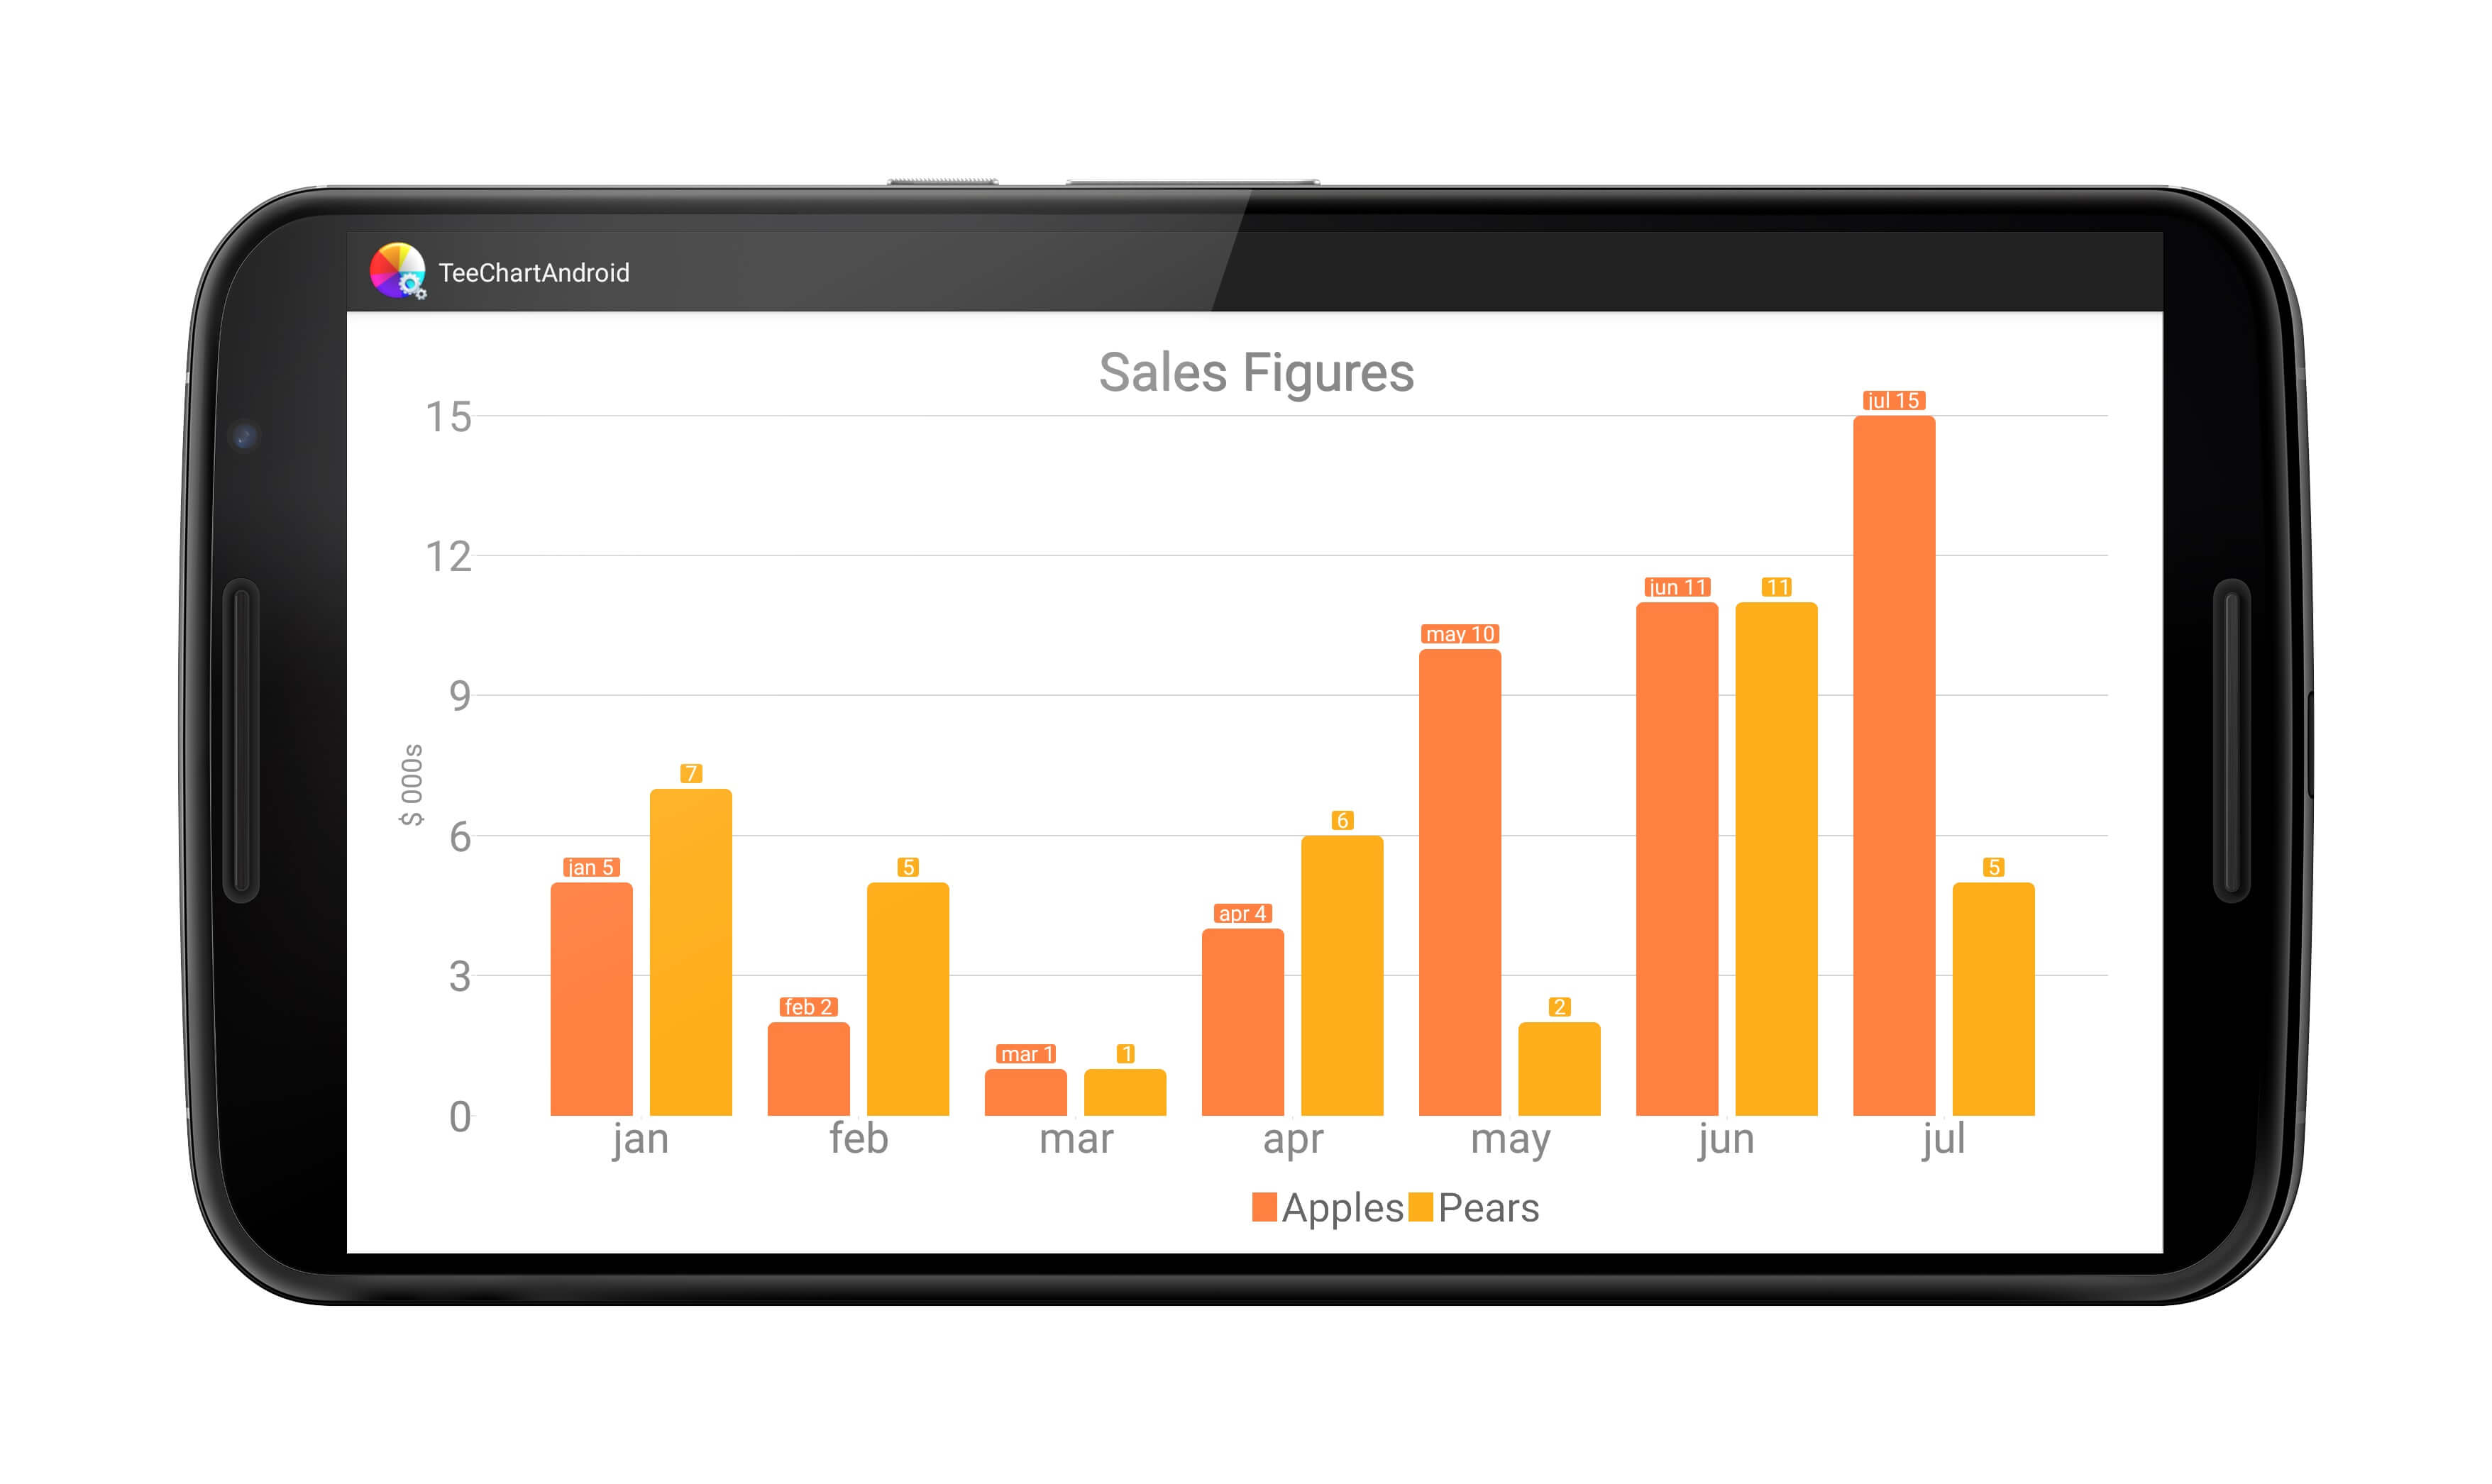 Sales figures performance on an Android device.